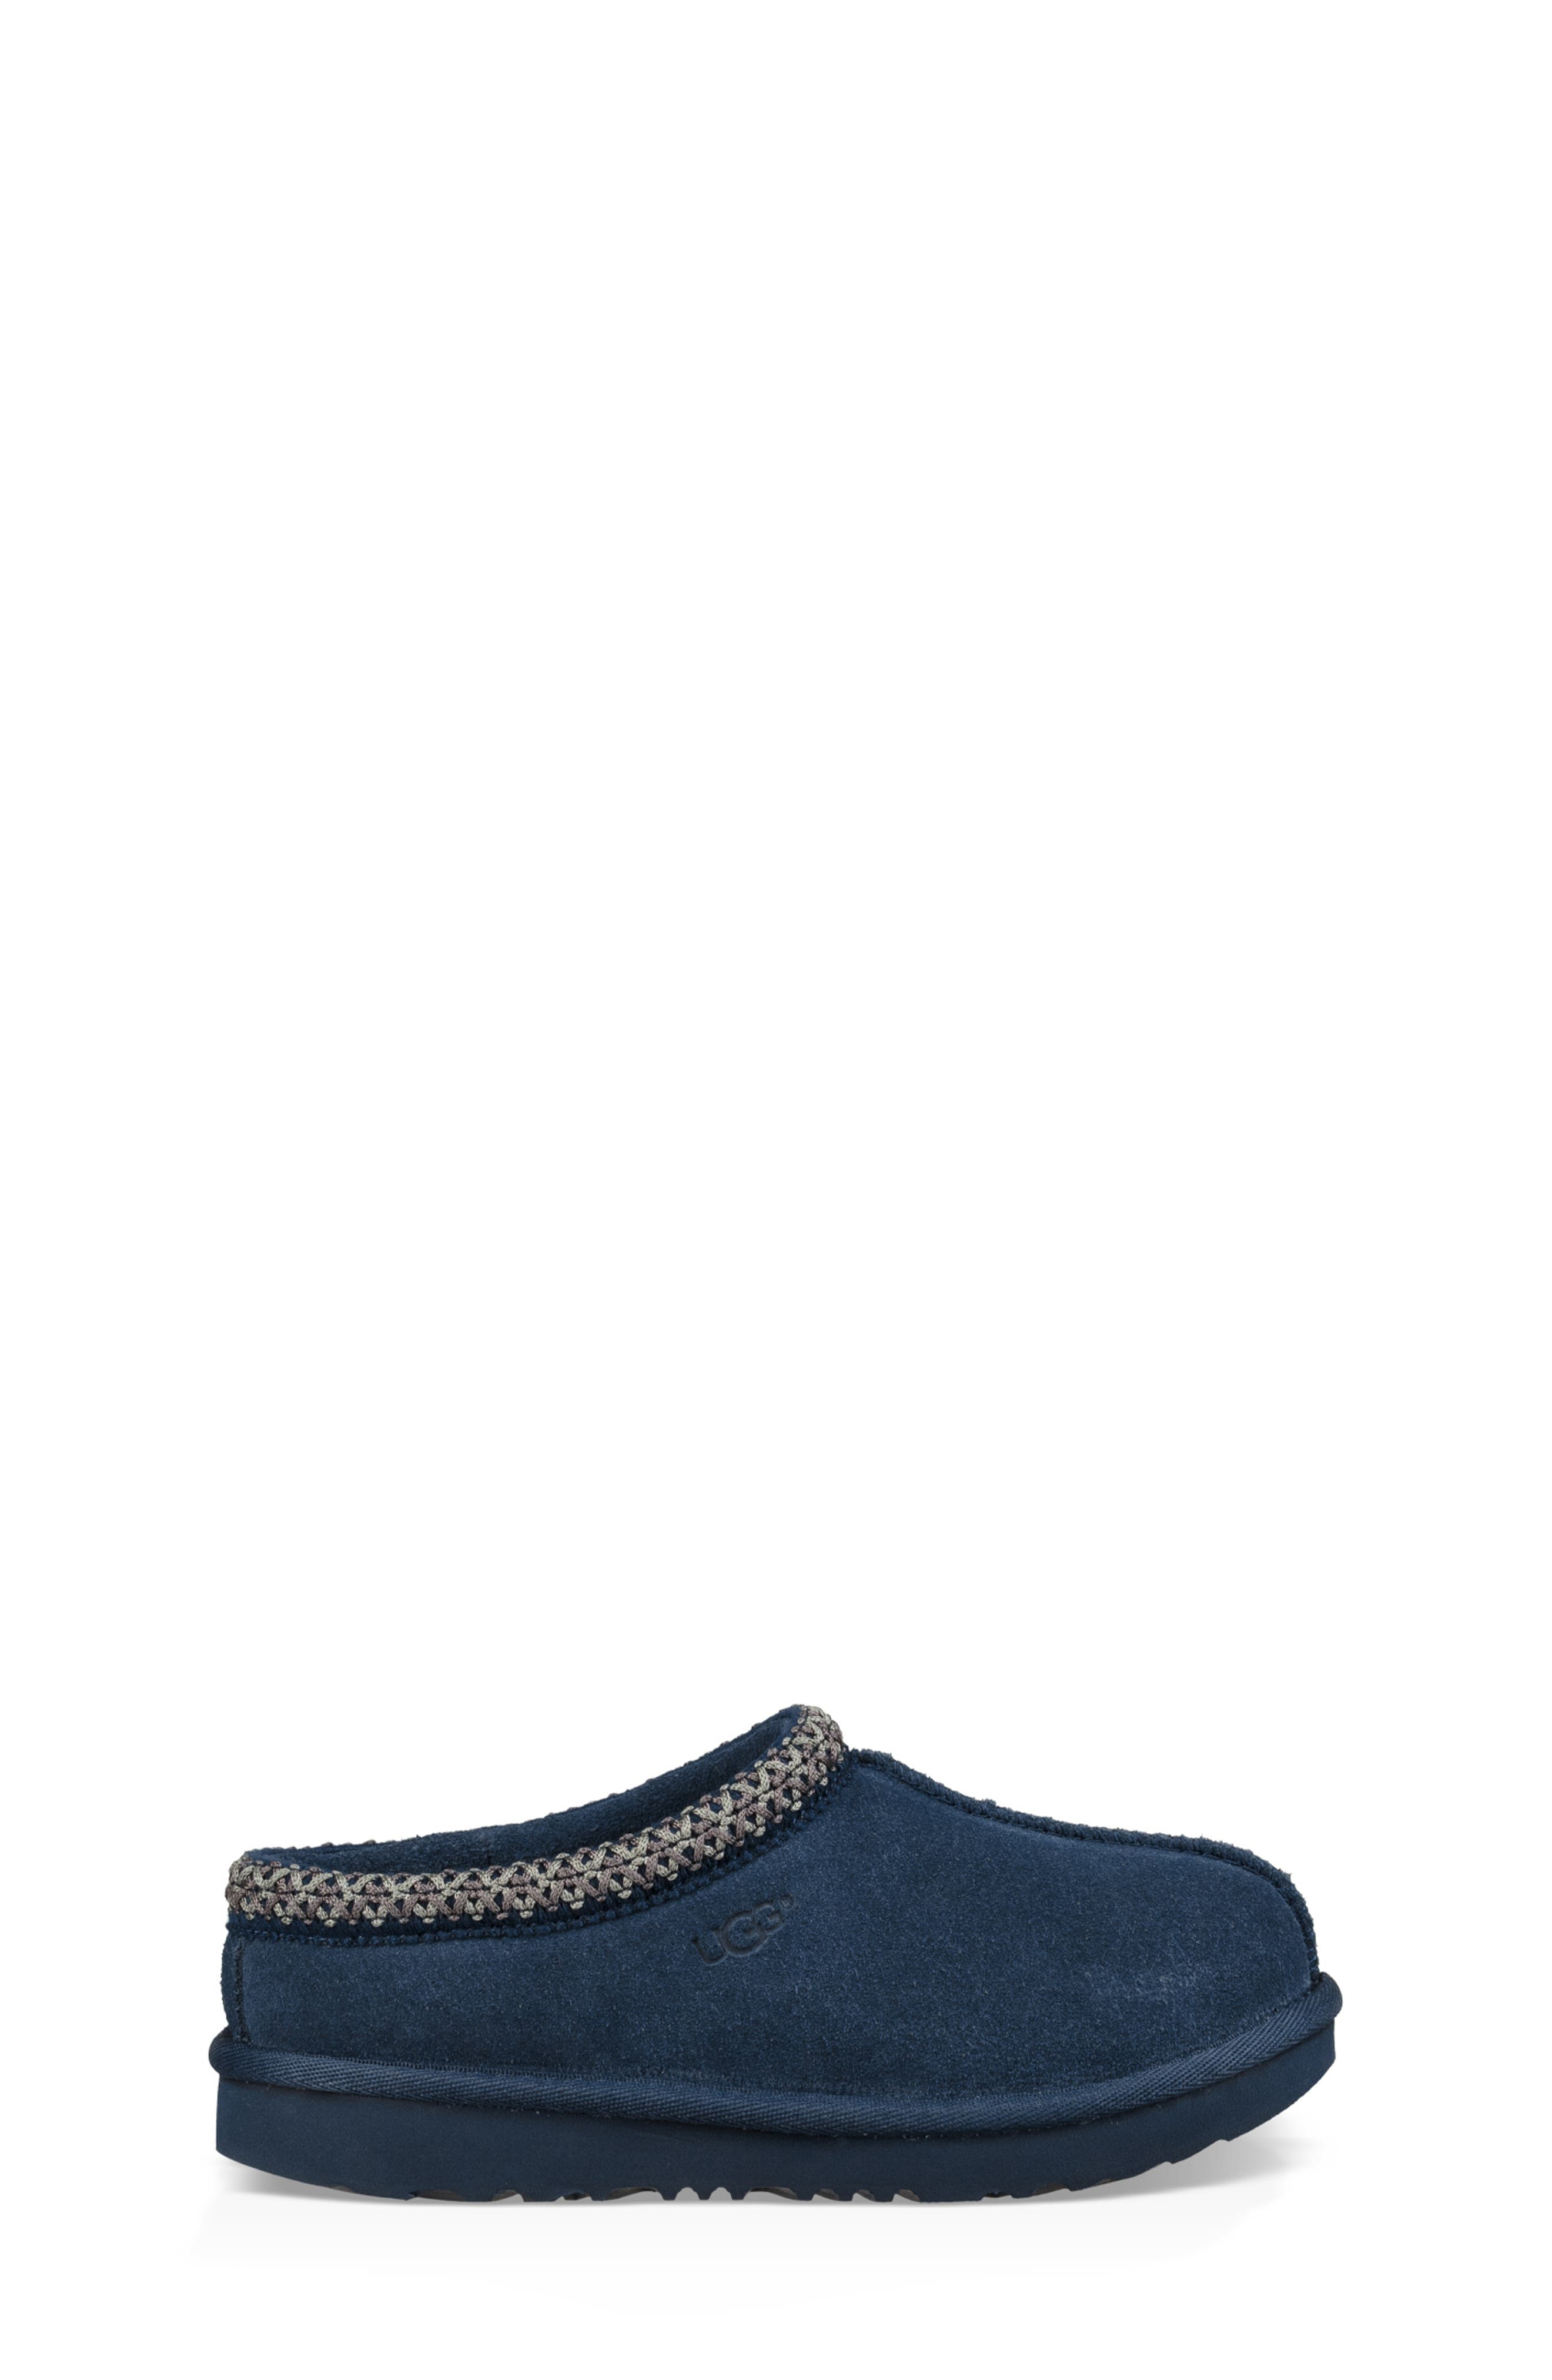 UGG<SUP>®</SUP>, K-Tasman II Embroidered Slipper, Alternate thumbnail 3, color, NEW NAVY